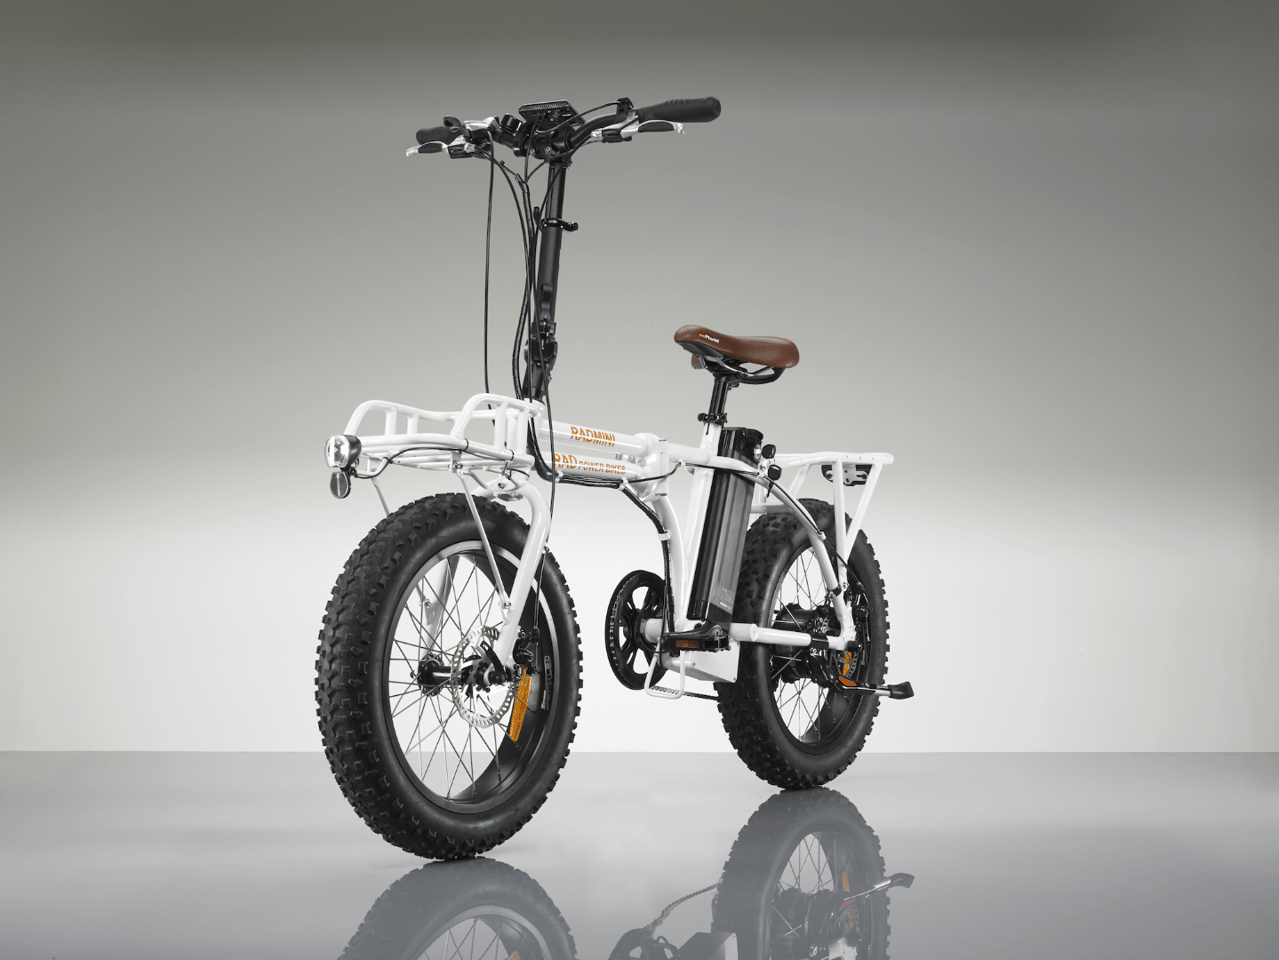 The RadMini offers 750 watts of motor power and plenty of cargo space